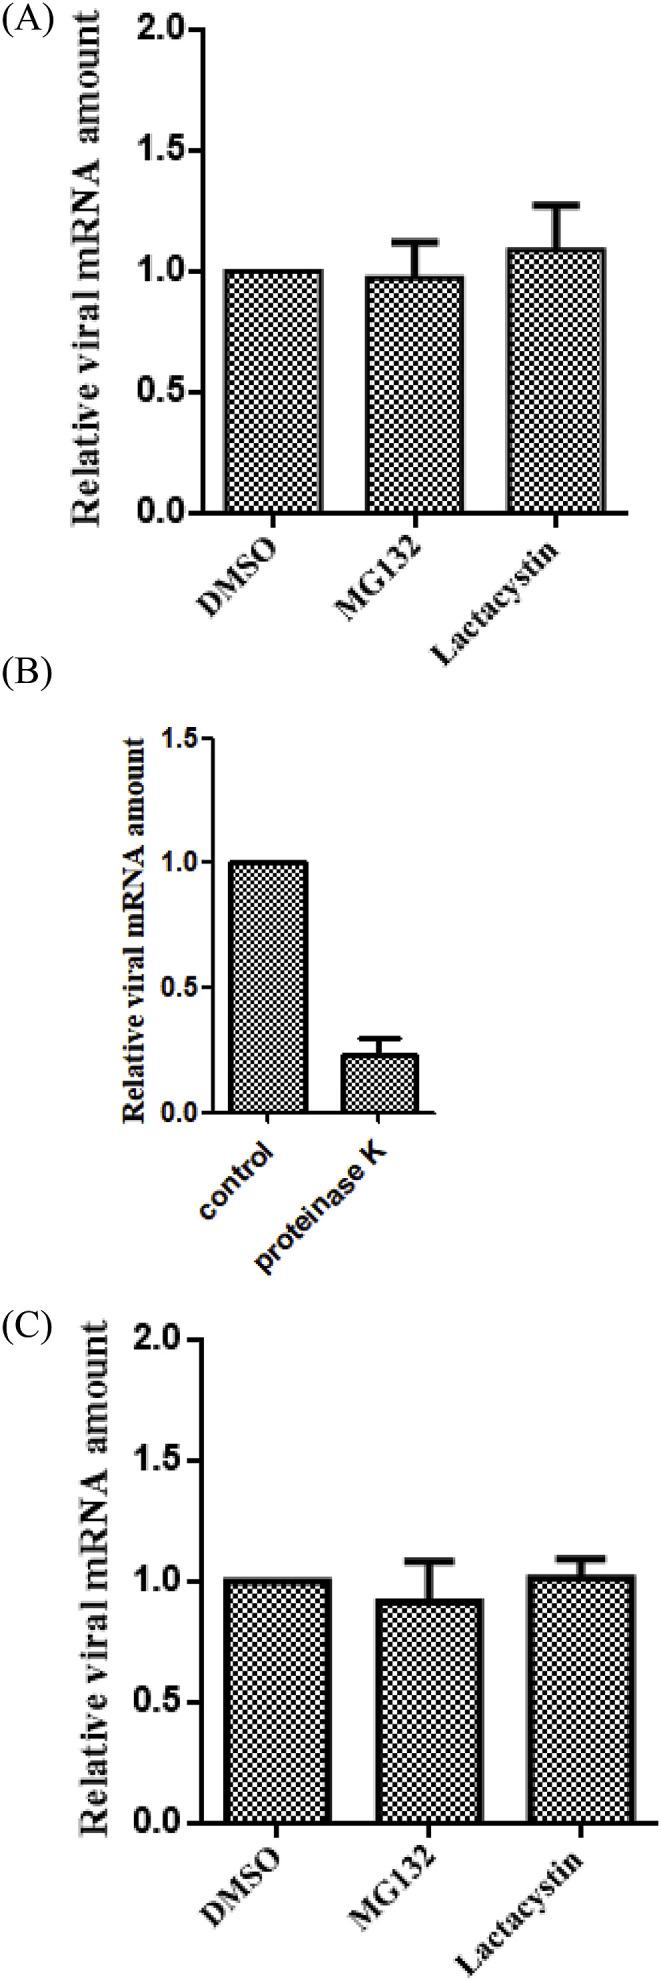 Proteasome inhibitors do not affect virus binding, penetration or internalization. (A) BHK-21 cells were pretreated with 2 μM MG132, 5 μM lactacystin for 1 h at 37 °C and absorbed with DTMUV (MOI = 1) for 1 h at 4 °C in the presence of the inhibitors. Then the cells were collected and the viral genomic RNA of the infected cells treated with the inhibitors relative to that of treated with DMSO was quantified by qPCR. (B) BHK-21 cells were incubated with DTMUV at 4 °C for 1 h and treated with proteinase K or cold PBS for 45 min at 4 °C after the unbound virus was washed out by PBS. Cells were collected and the viral genomic RNA of the infected cells was quantified by qPCR (C) BHK-21 cells were pretreated with the inhibitors or DMSO for 1 h at 37 °C and absorbed with DTMUV (MOI = 1) for 1 h at 4 °C in the presence of the inhibitors. Then the cells were shifted to 37 °C for 2 h followed by washing with cold PBS. After treating with proteinase K for 45 min at 4 °C, the BHK-21 cells were collected and the internalized virions were quantified by qPCR.